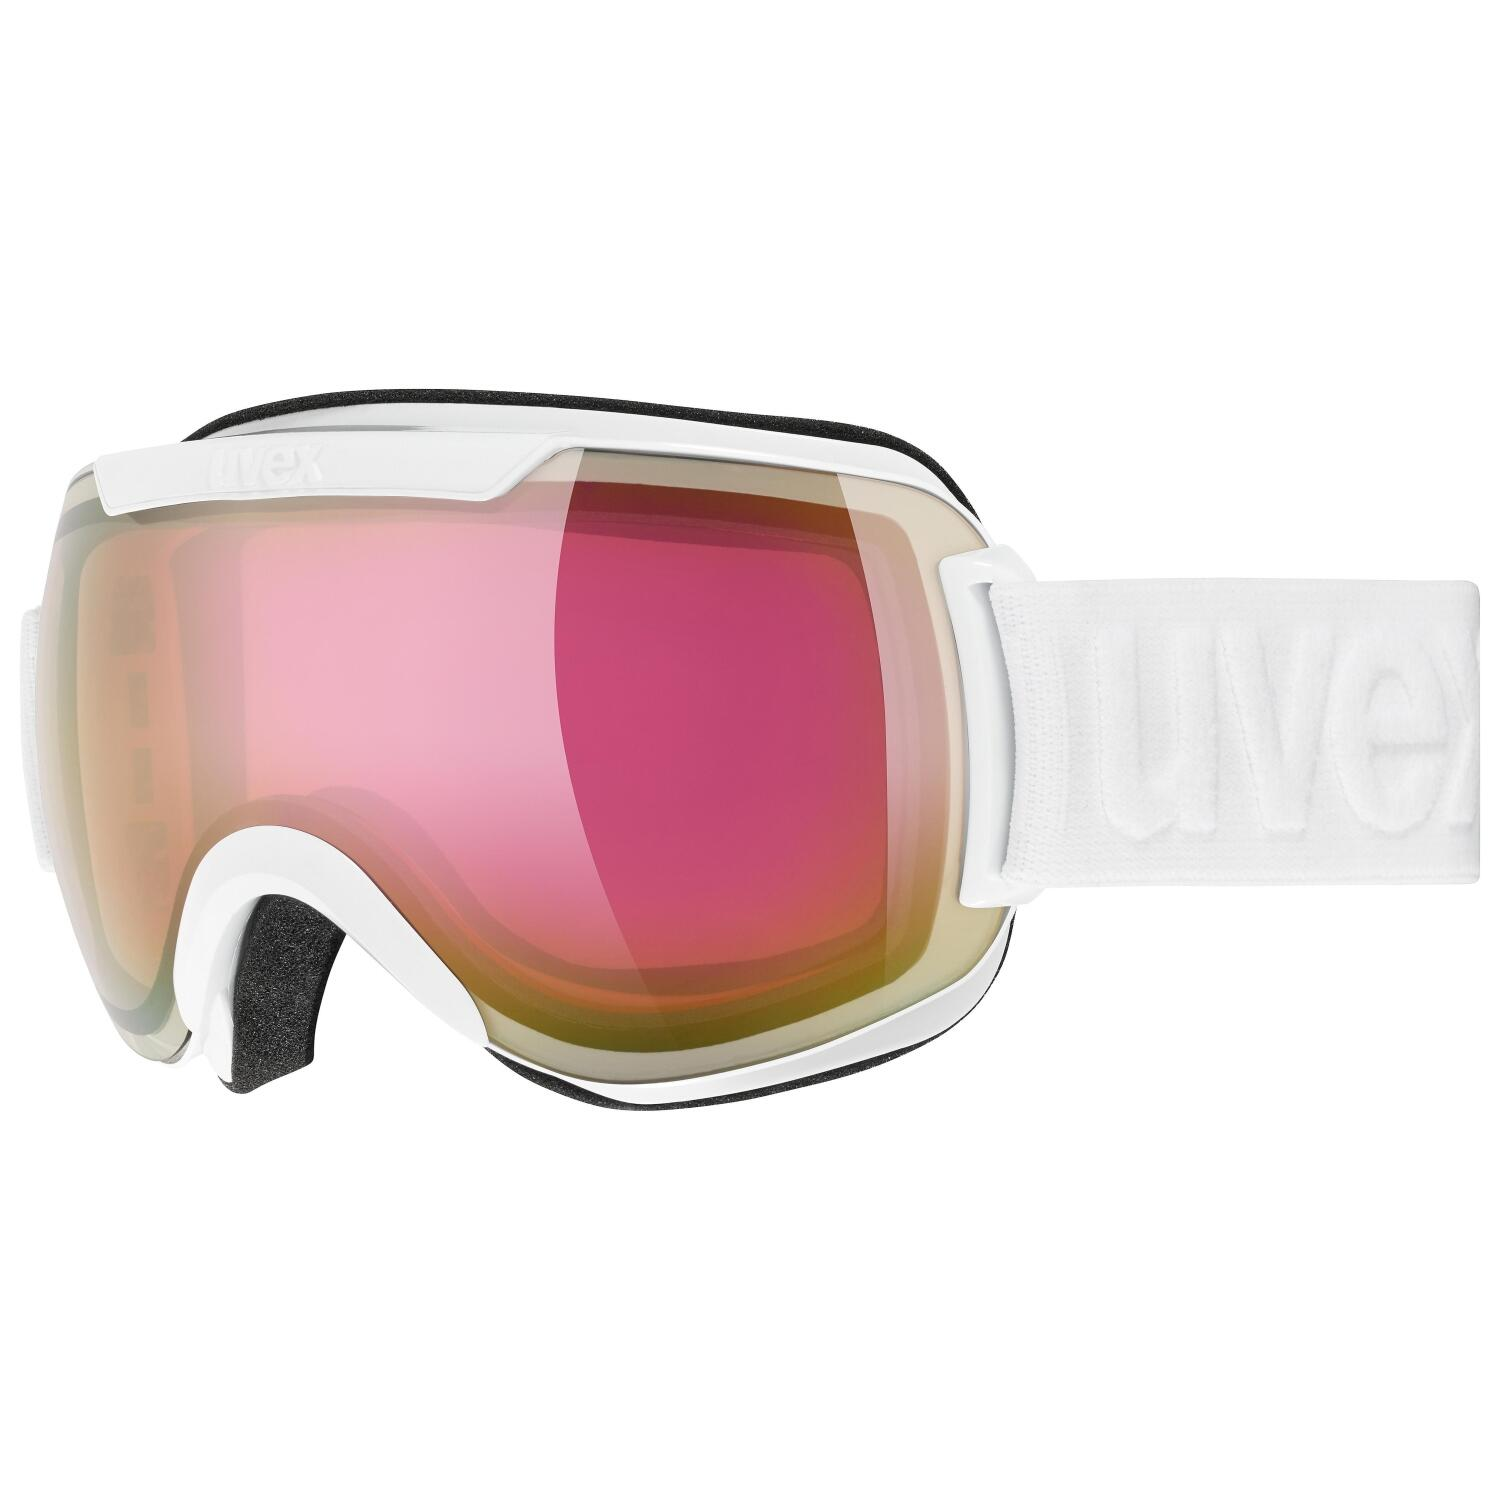 uvex-skibrille-downhill-2000-full-mirror-farbe-1230-white-mirror-pink-rose-s2-